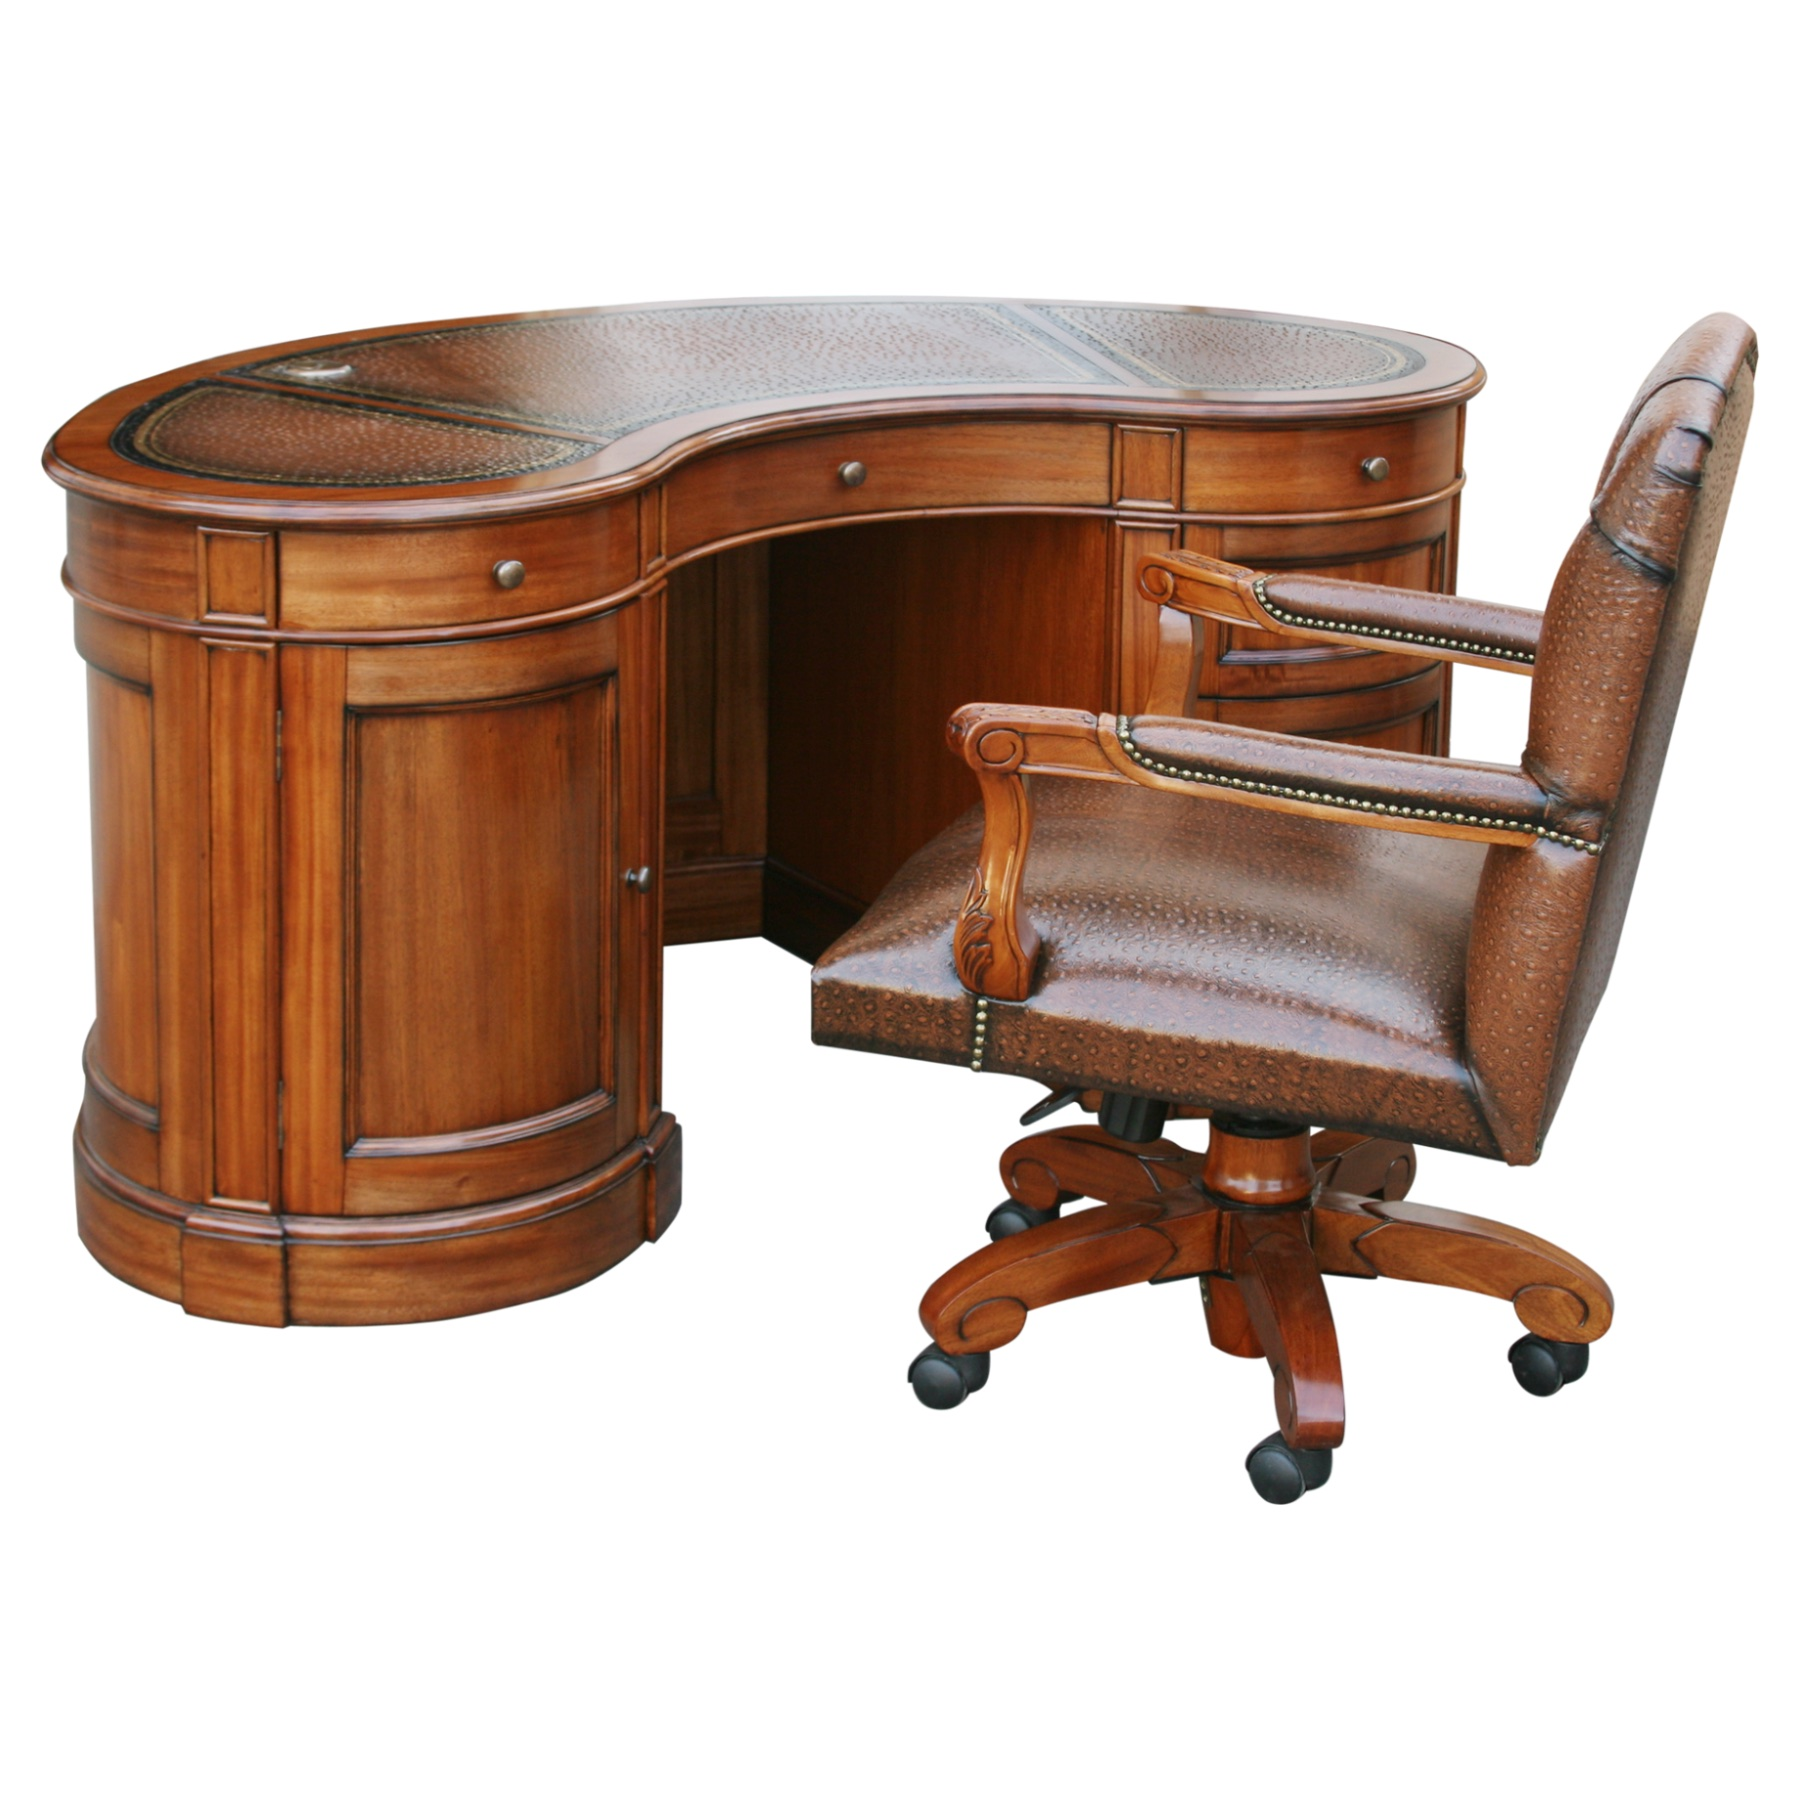 home antique ideas writing classic for table gorgeous bean desk cheap unique kidney ki furniture executive office shaped